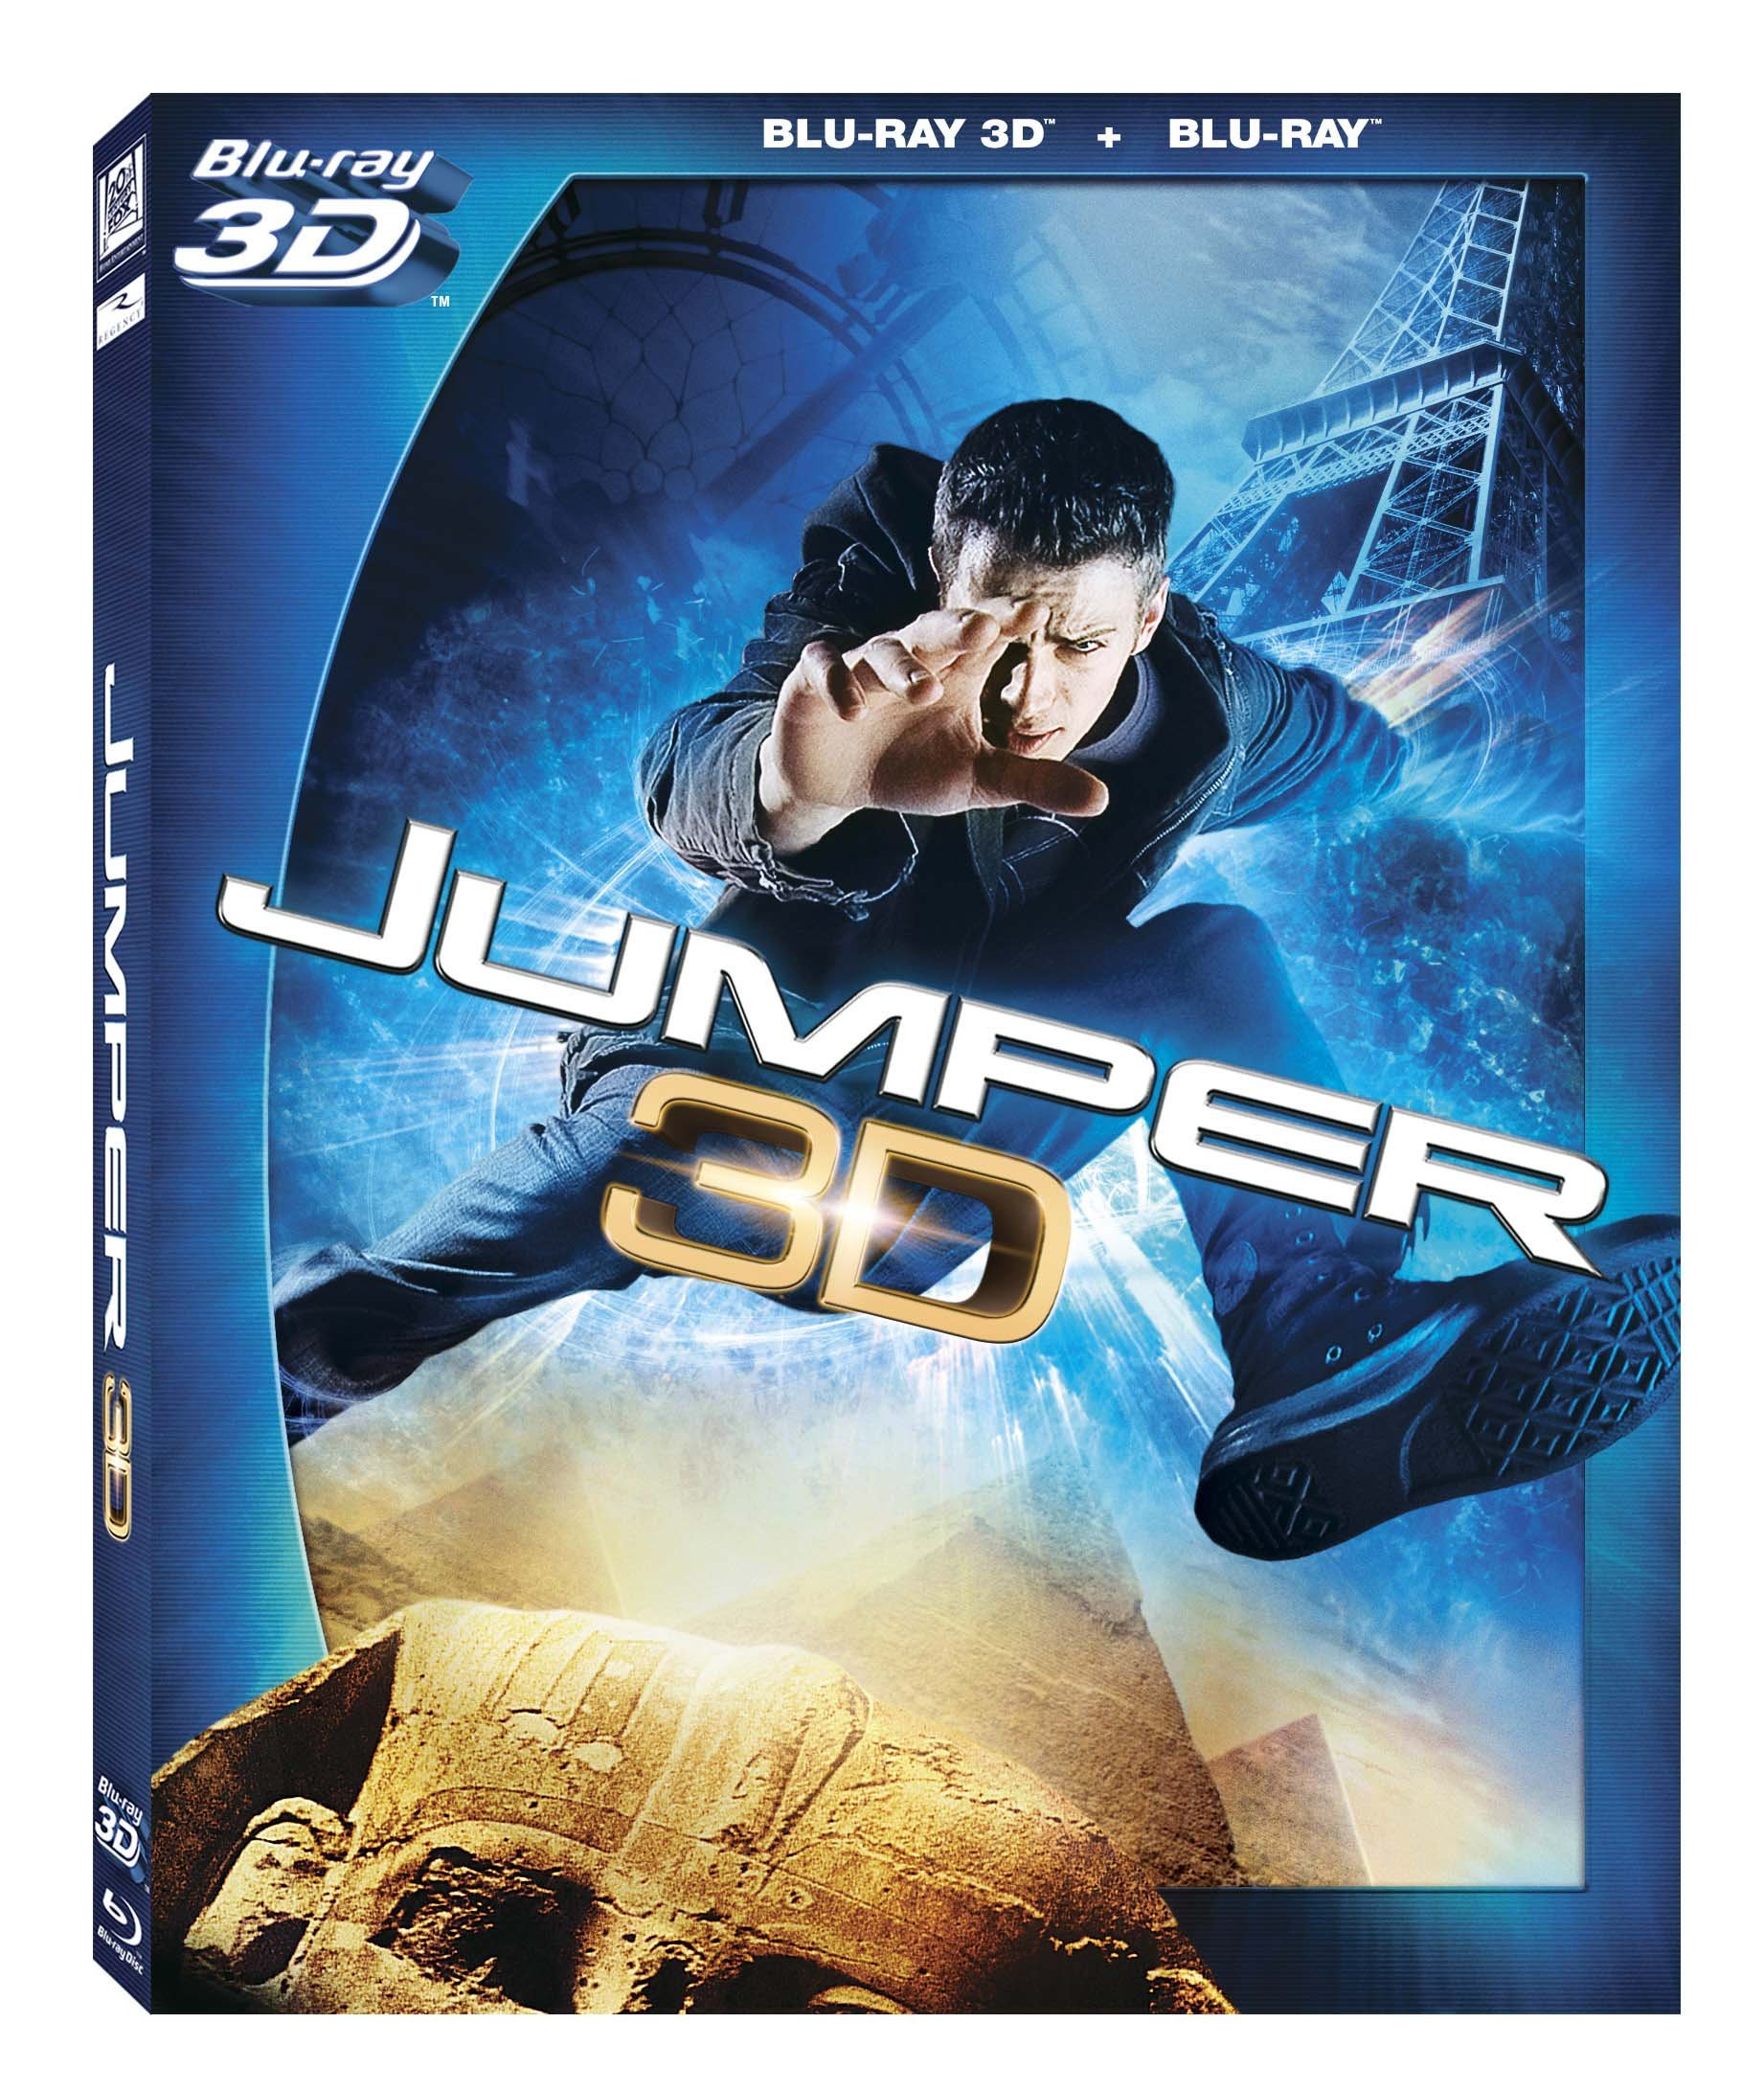 Blu-ray 3D : Jumper (, Digital Theater System, AC-3, Dolby, 3 Dimensional)